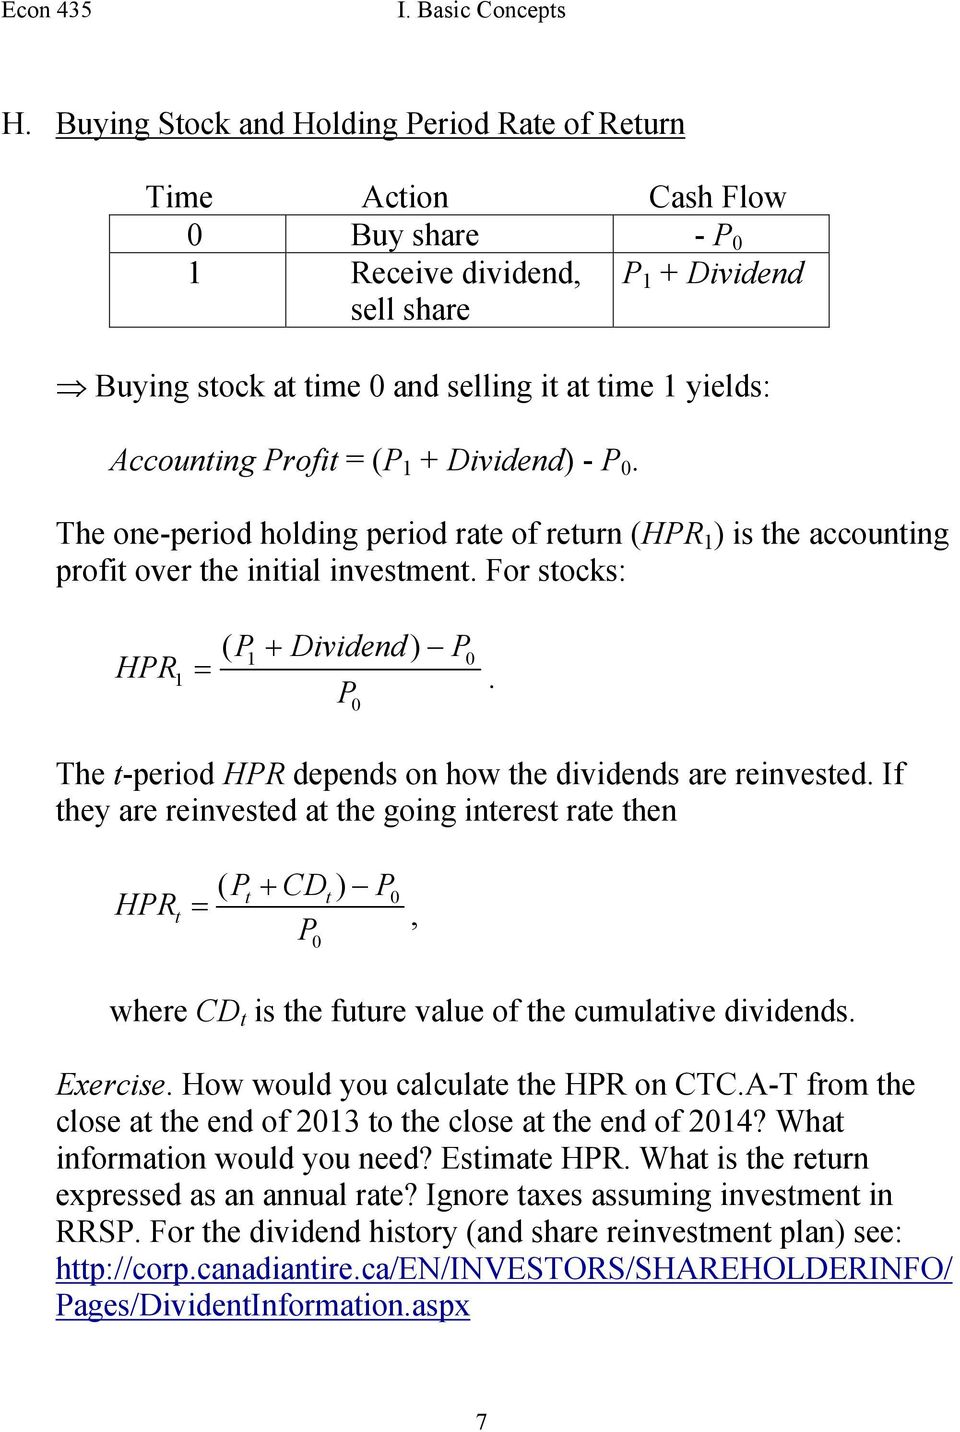 0 The -period HPR depends on how he dividends are reinvesed. If hey are reinvesed a he going ineres rae hen HPR ( P CD ) P 0 P, 0 where CD is he fuure value of he cumulaive dividends. Exercise.